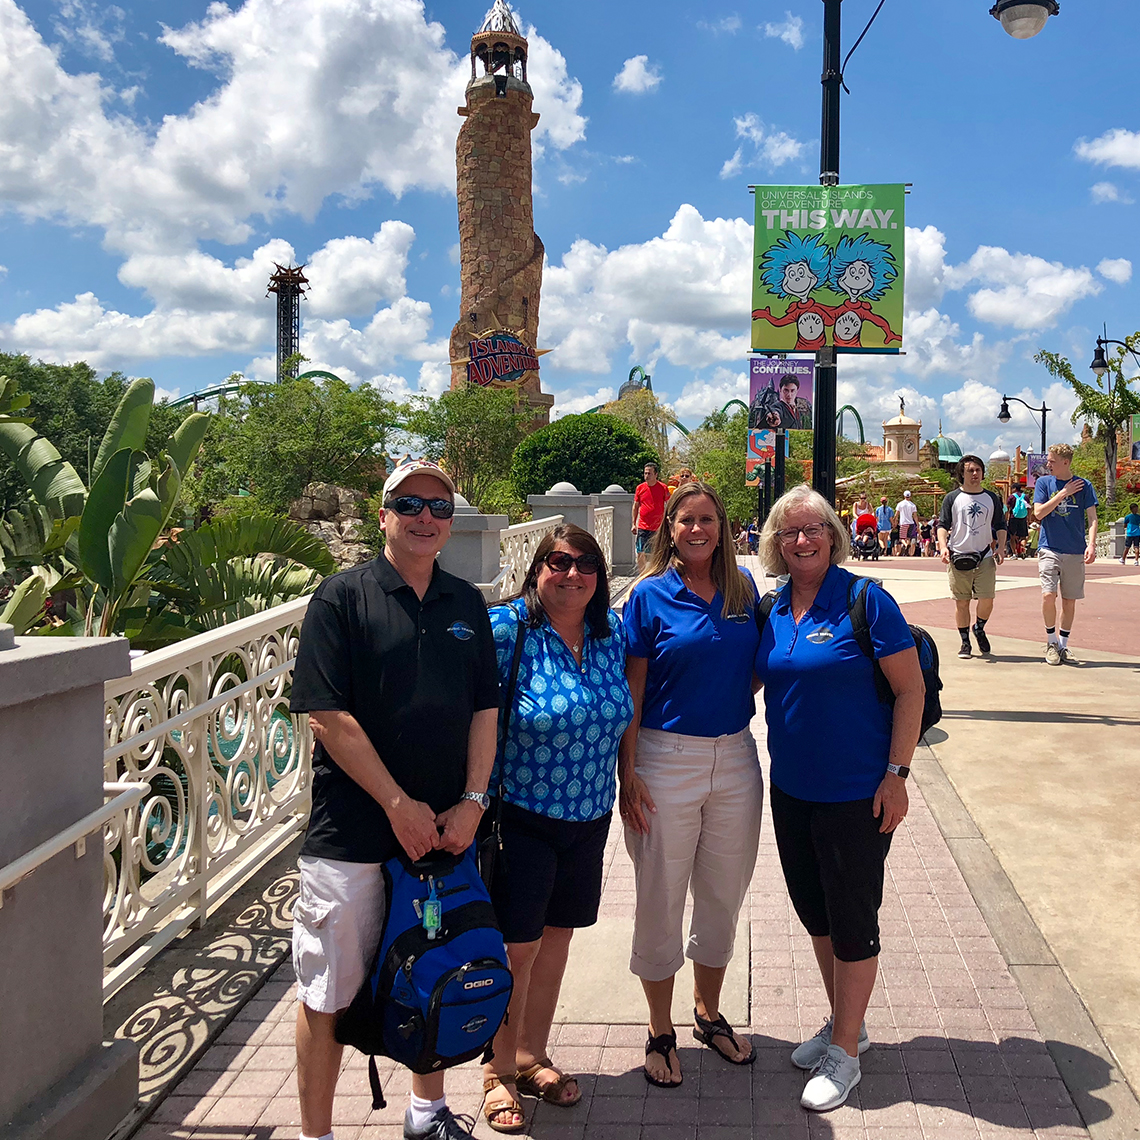 From left to right: MTC Tour Directors Tom Young, Kathy McGrady, Nancy Reichmann, and Sue Sue Guindon at Universal's Islands of Adventure™ Theme Park.